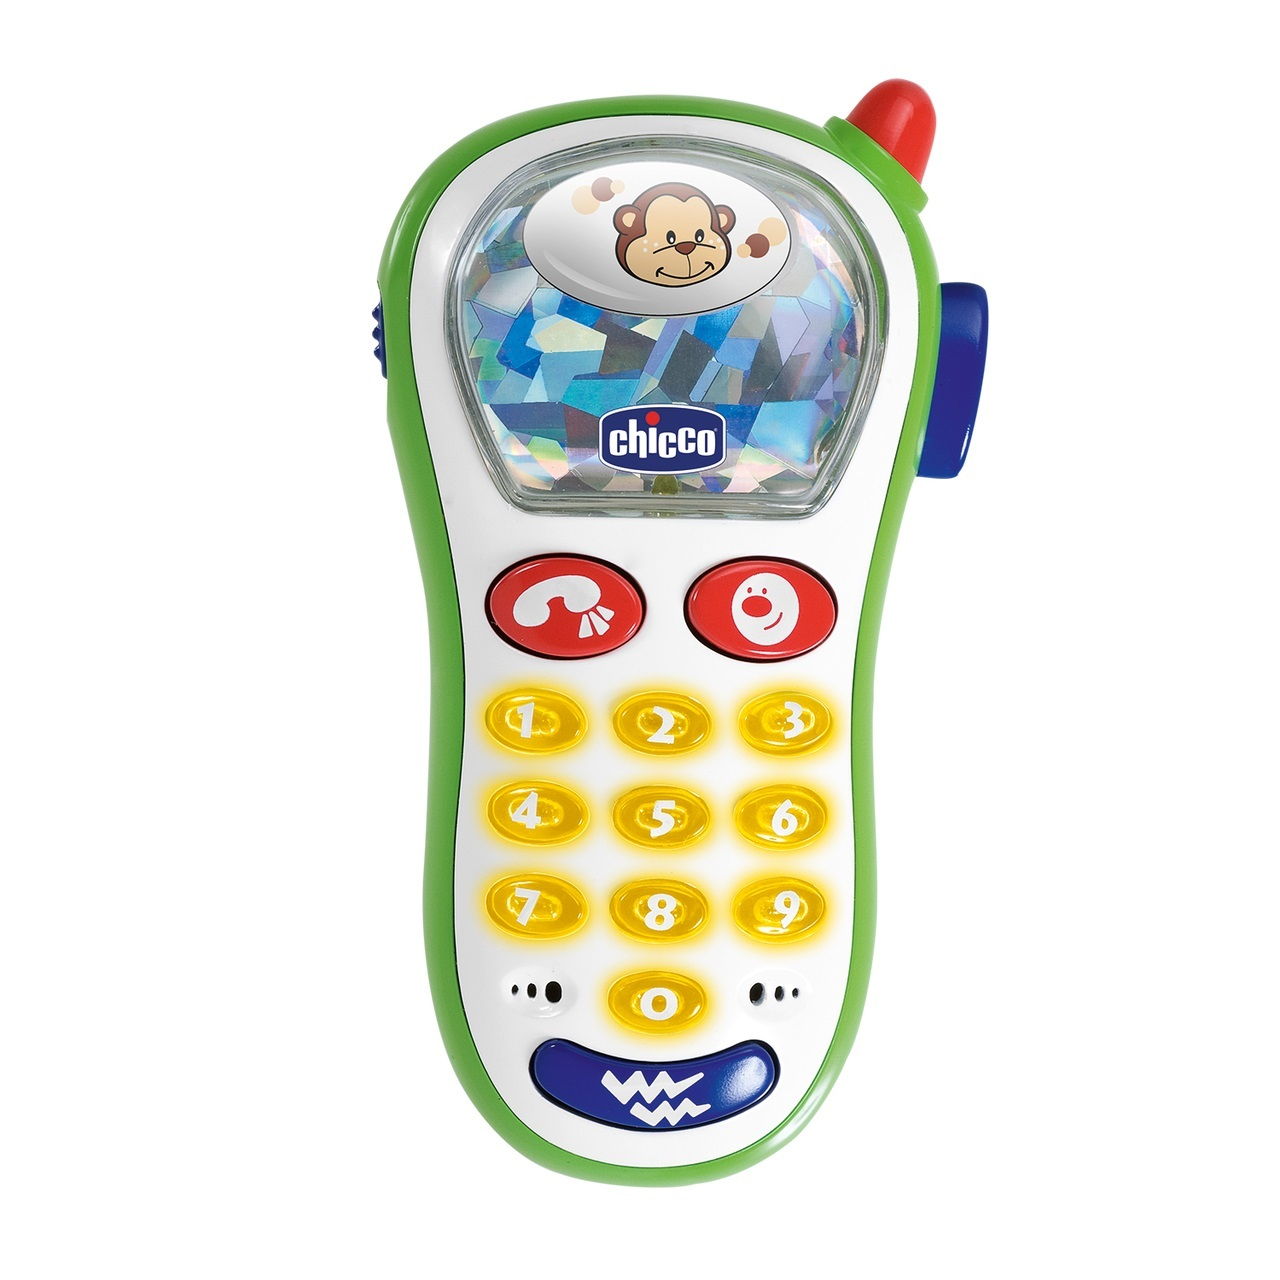 Chicco: Vibrating Photo Phone image